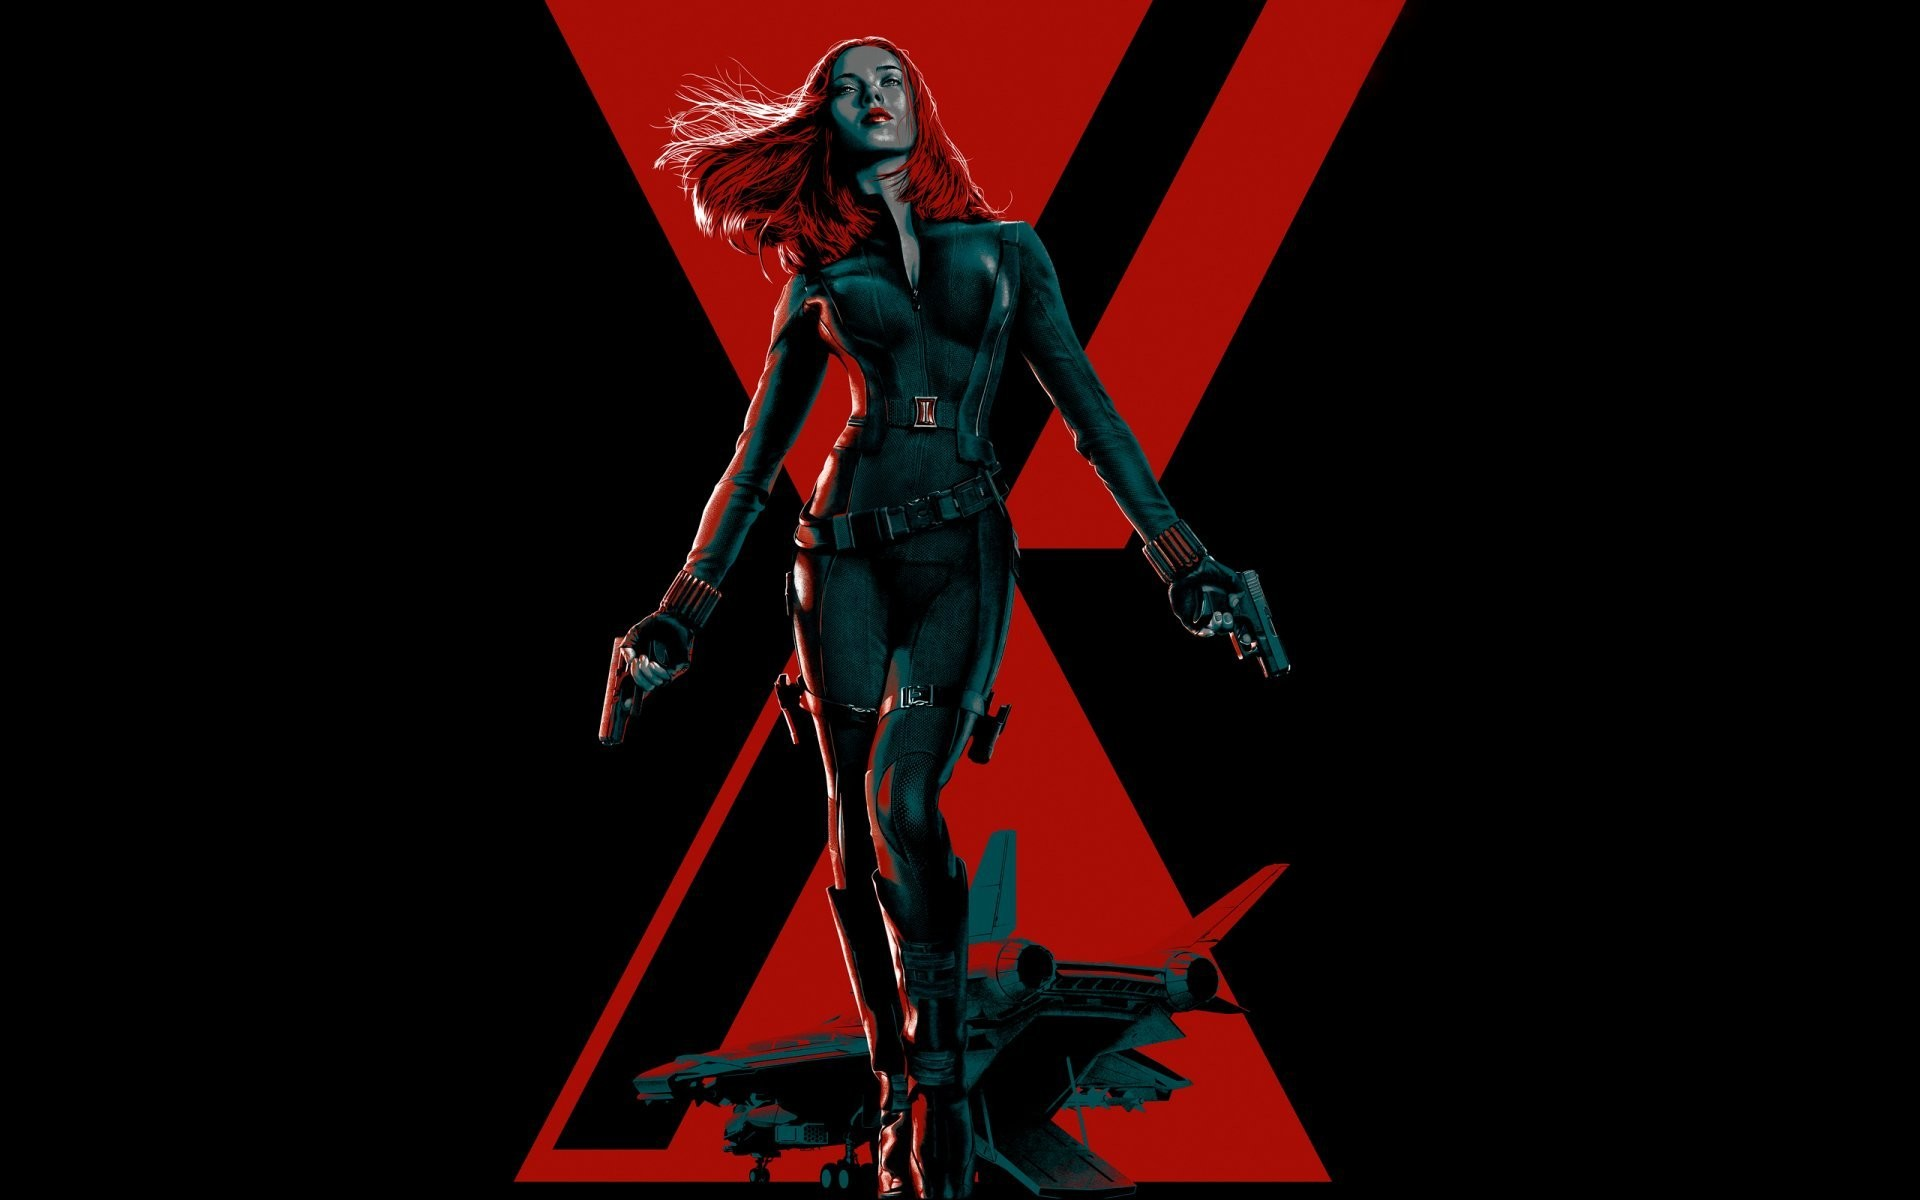 1920x1200 scarlett johansson captain america:the winter soldier art natasha romanoff  black widow